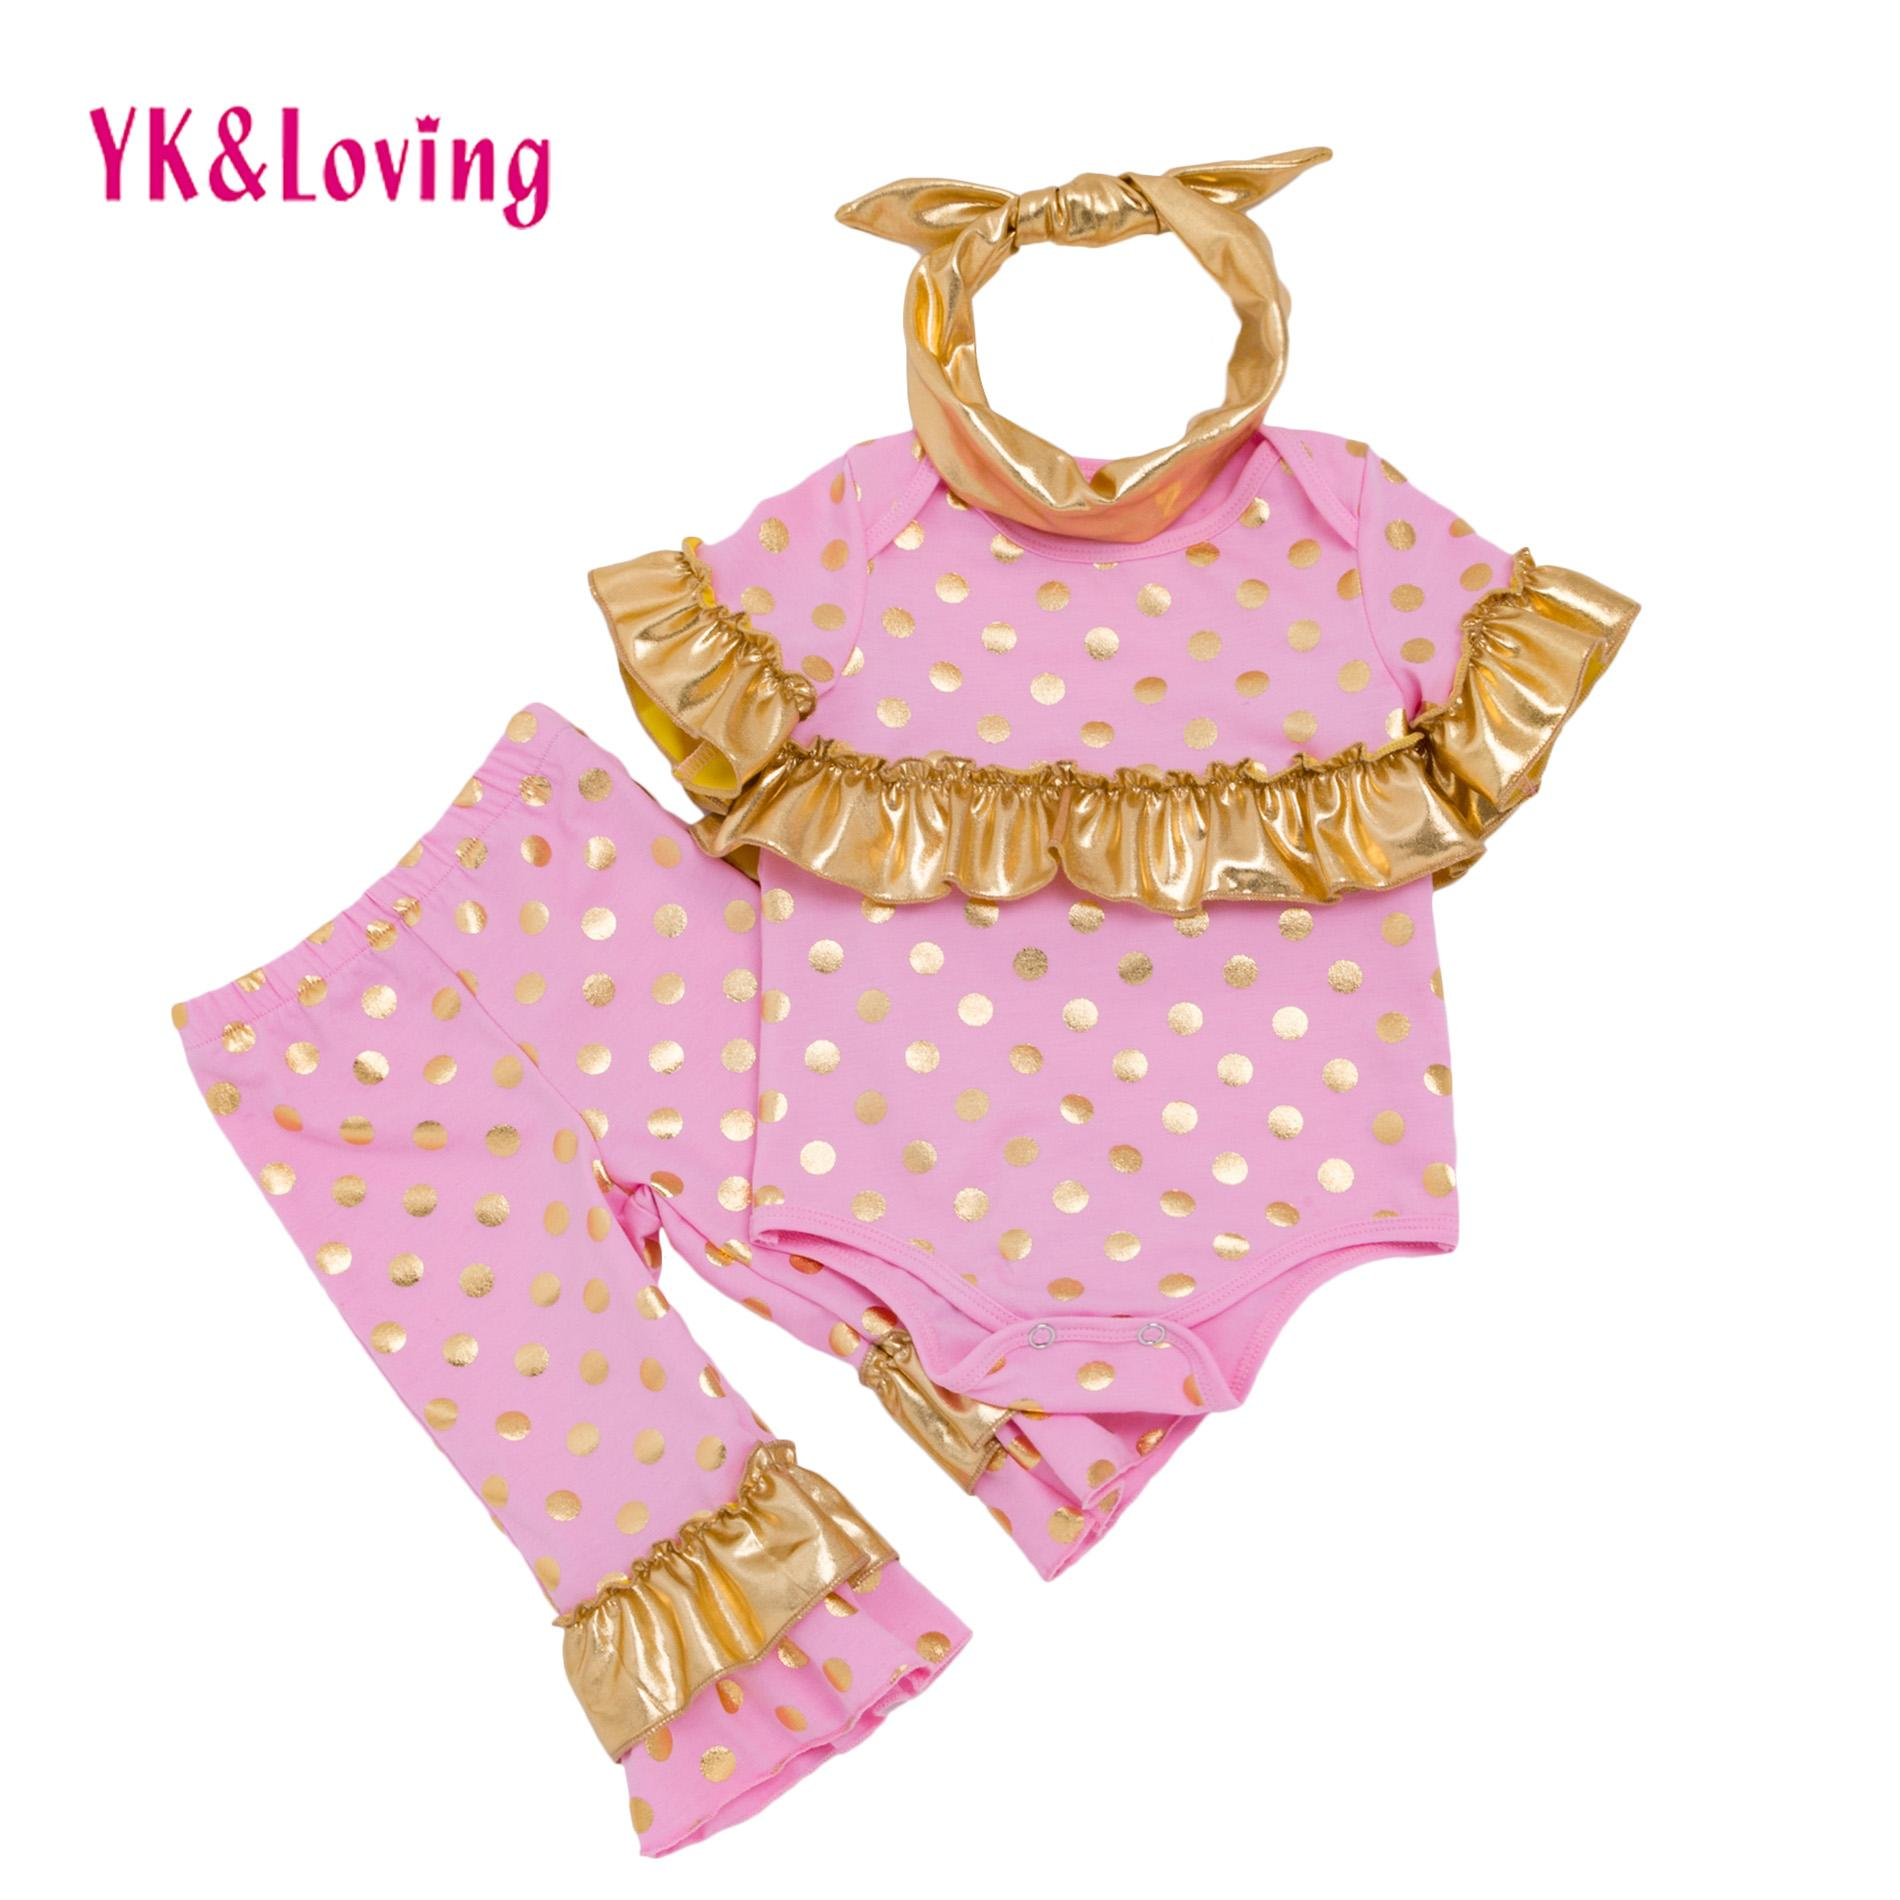 c054f67f9832 Baby Girl Clothing Sets Infant Toddler Ruffle Sleeve Romper Pants ...